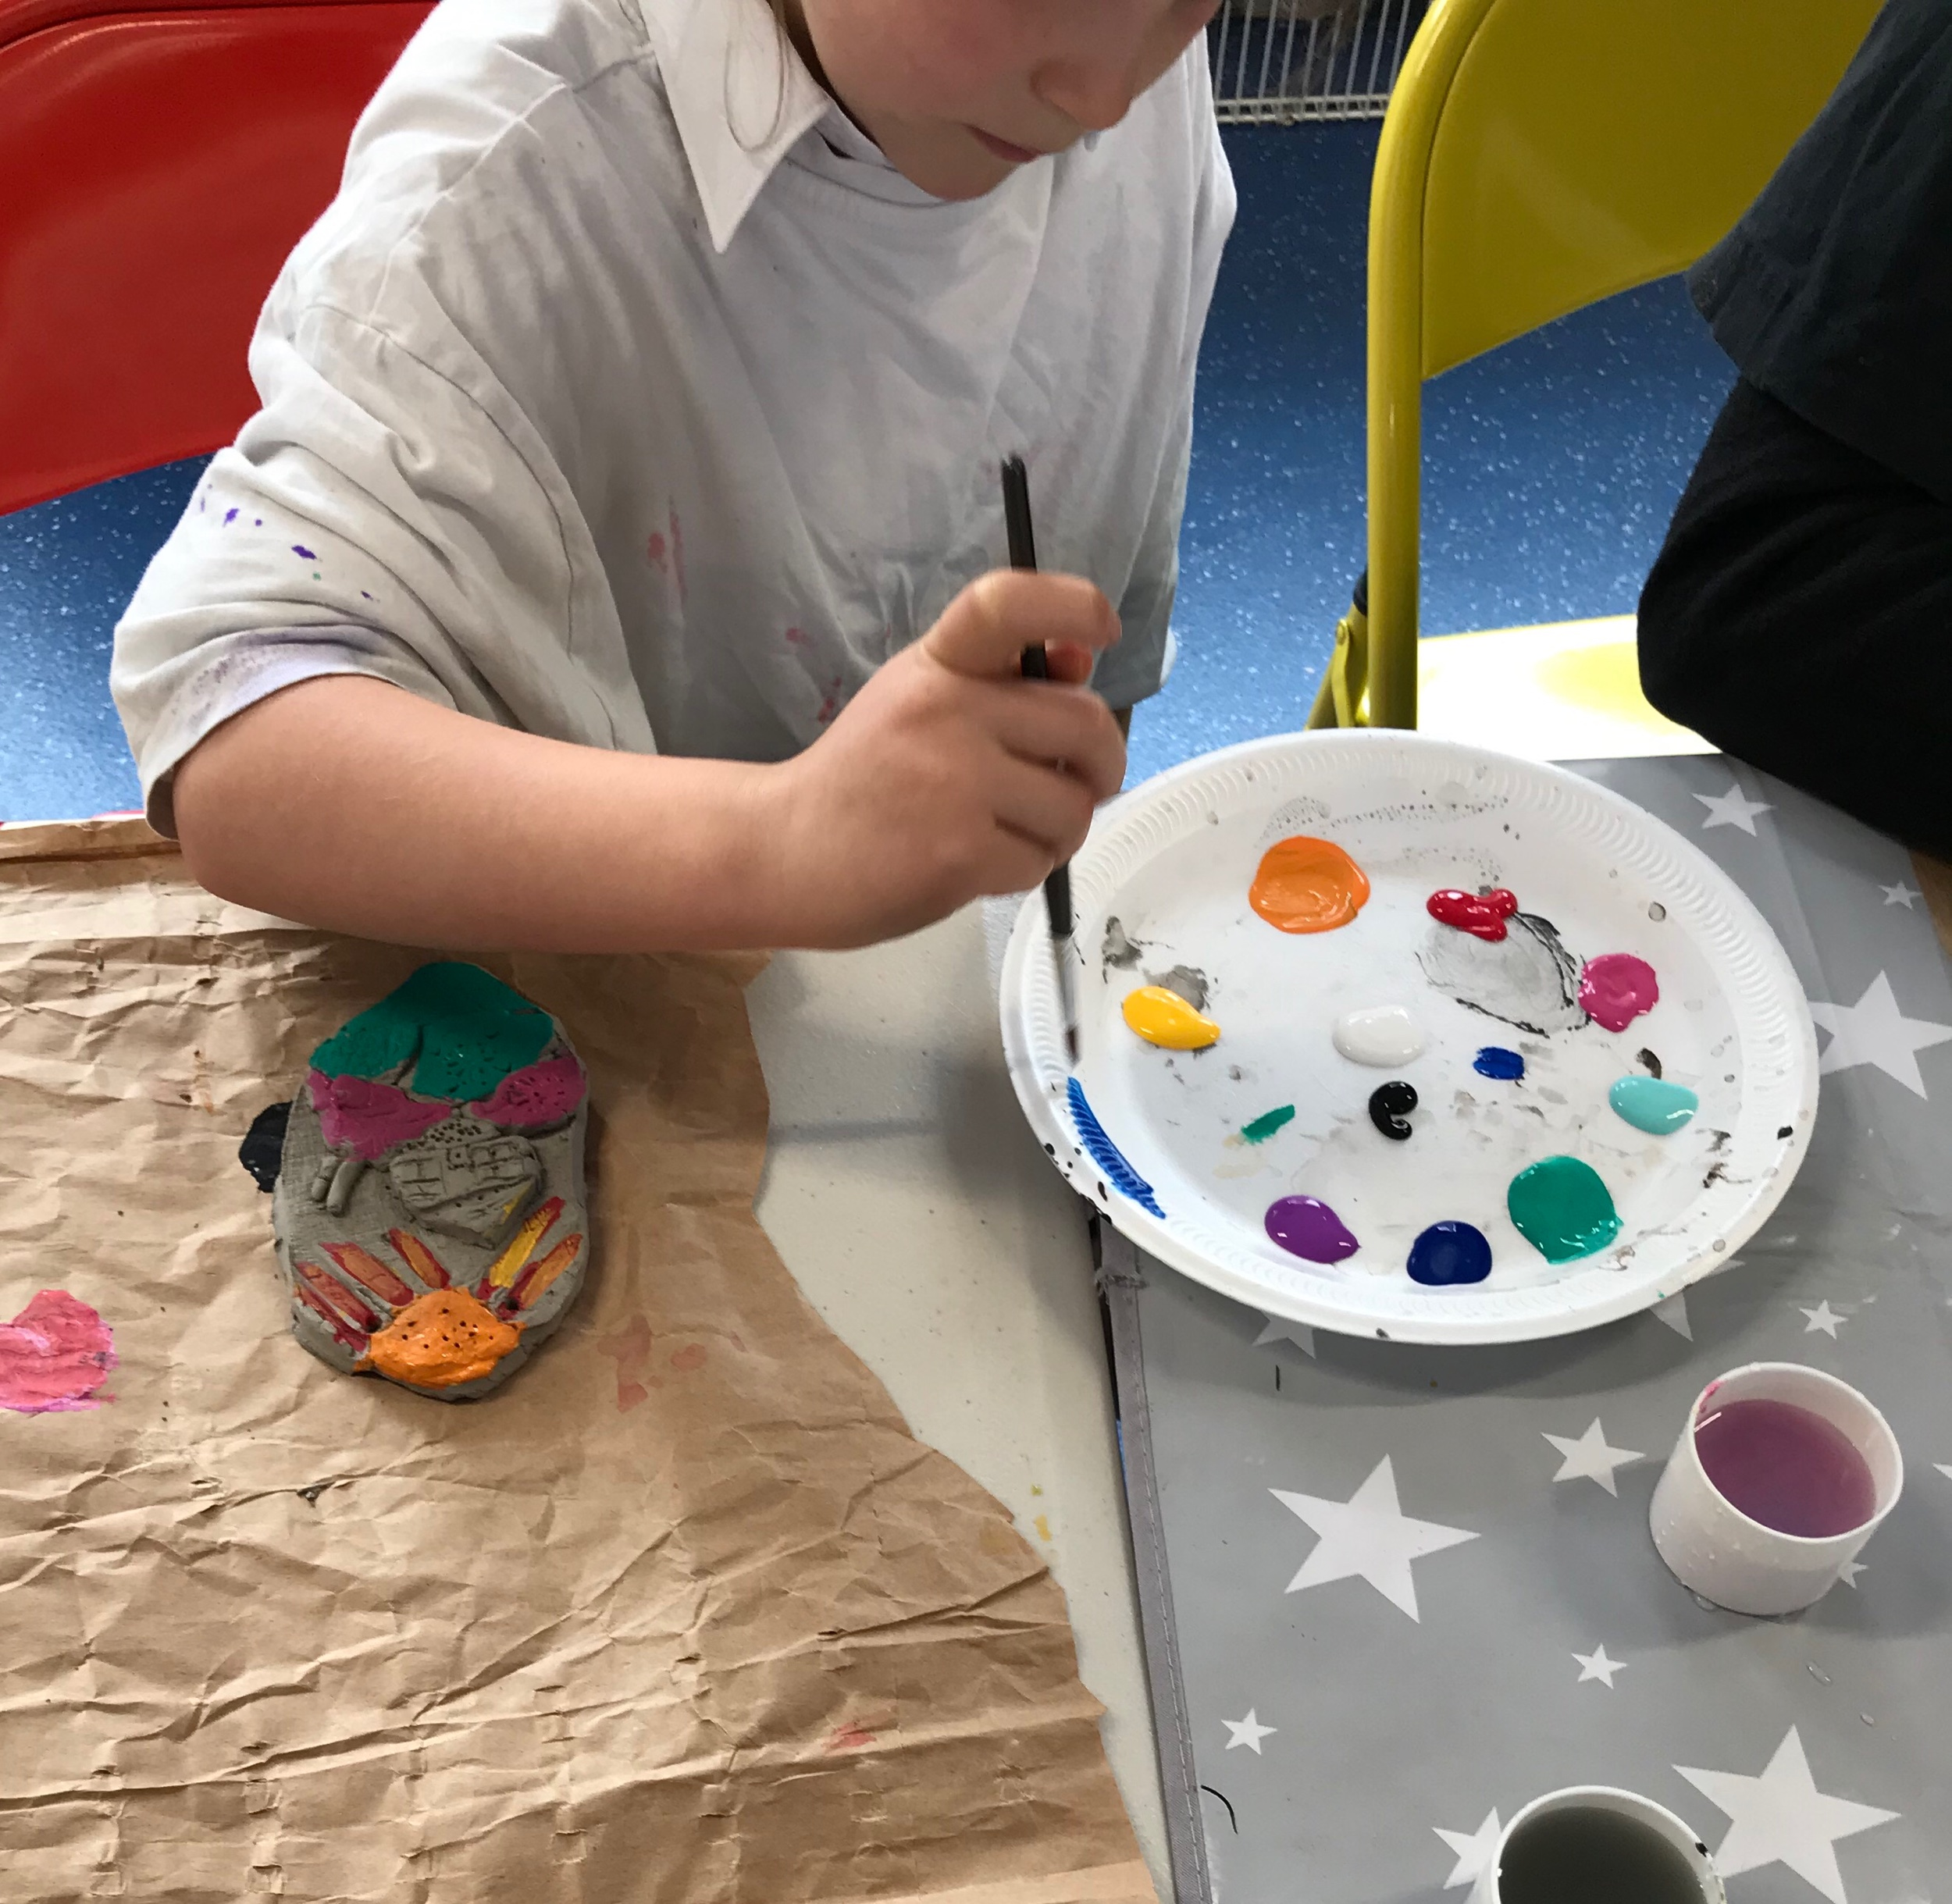 Painting with acrylics onto clay landscapes